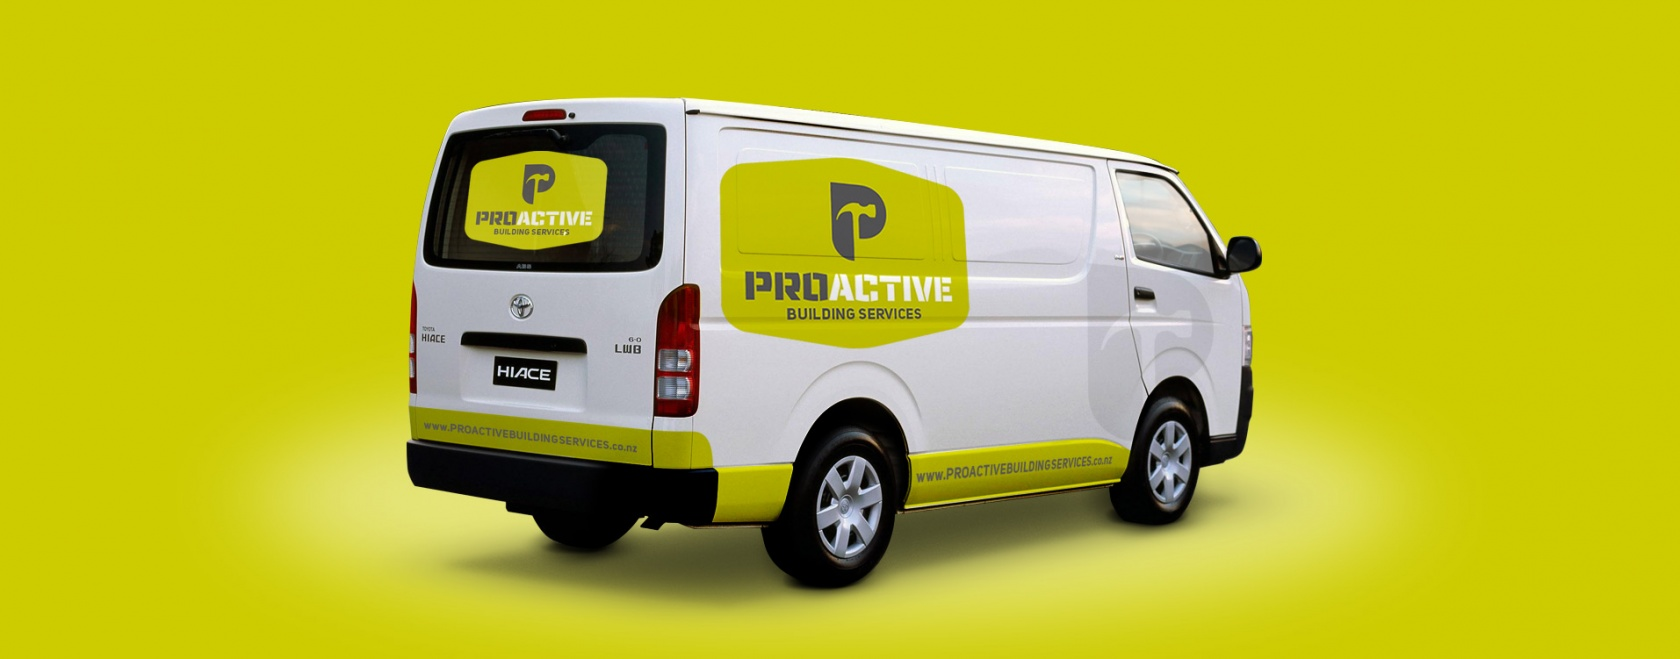 project-Proactive-van